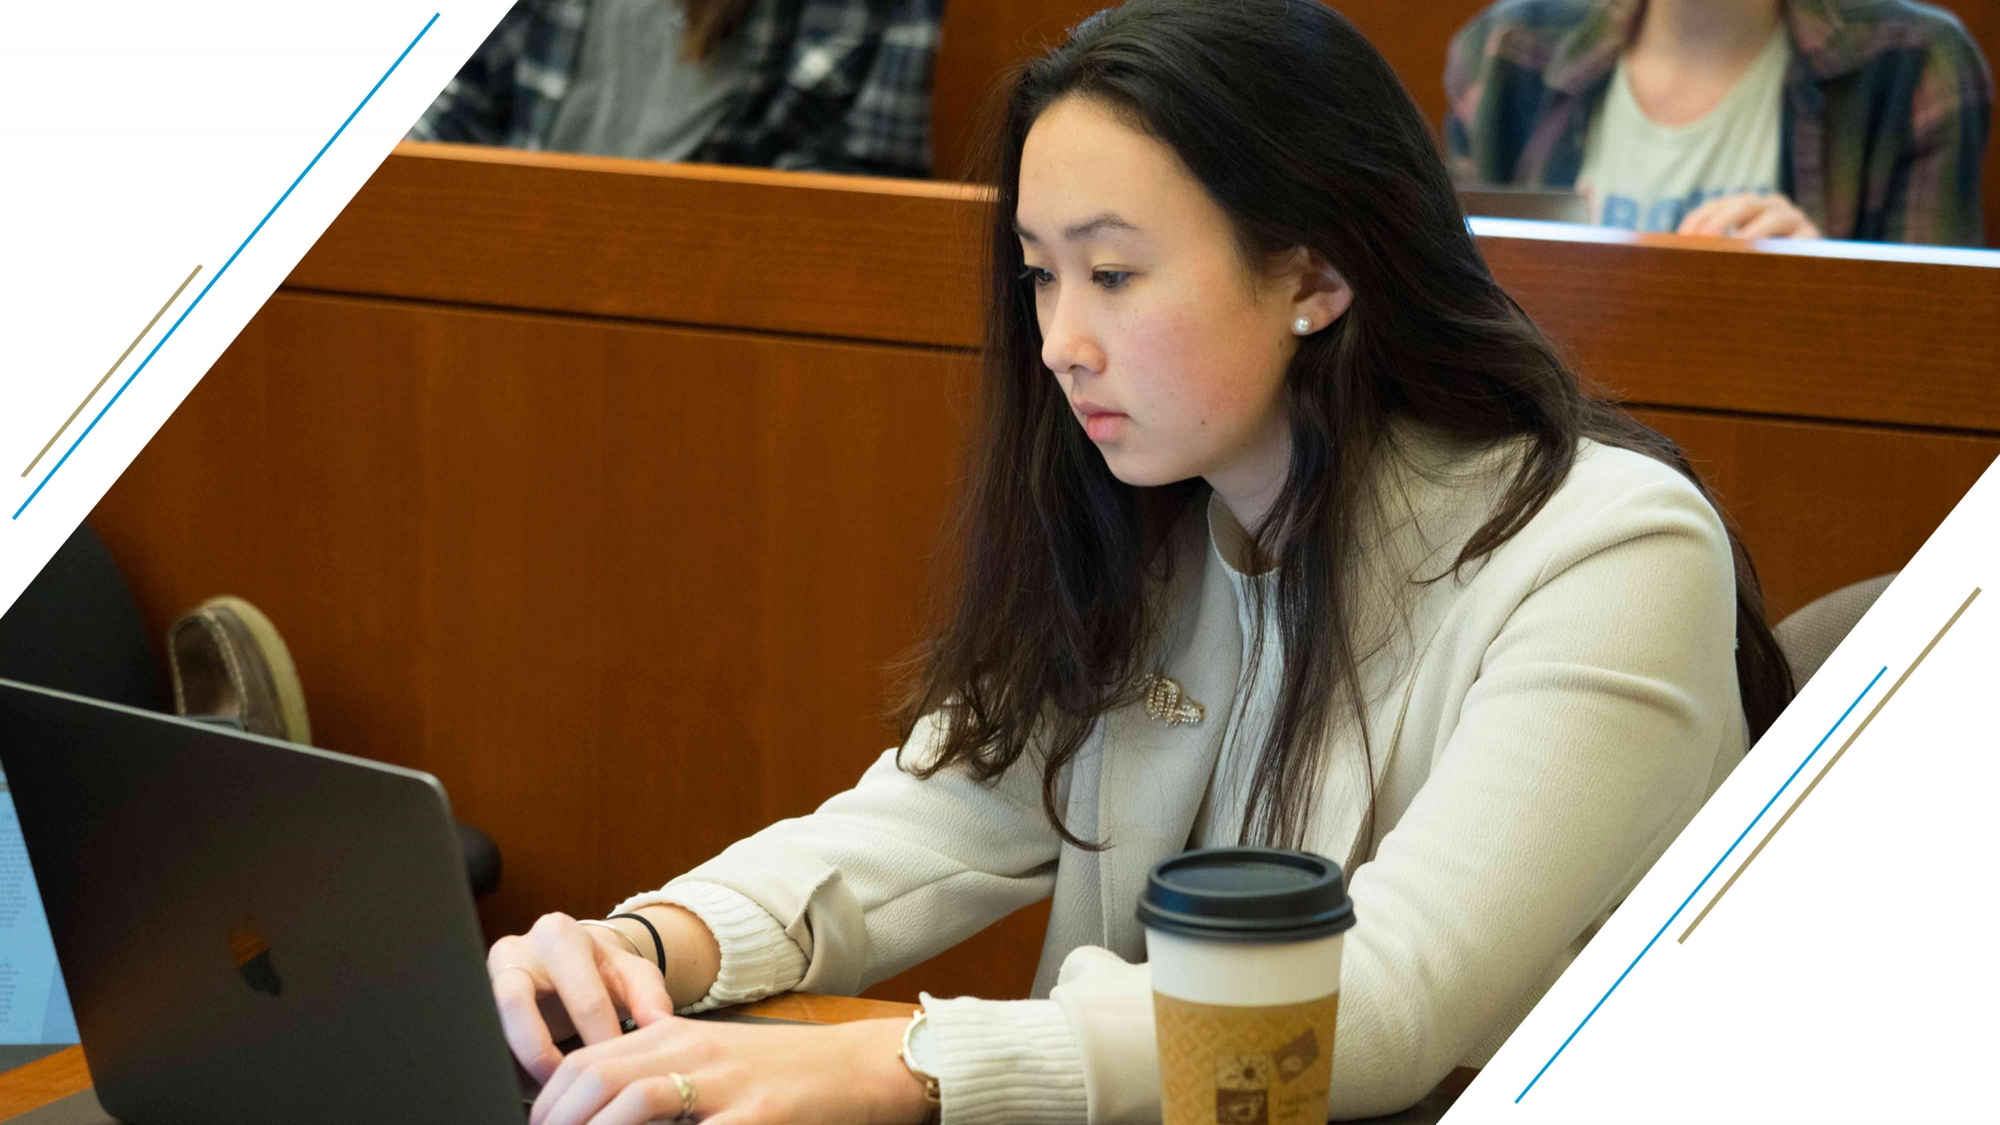 photo: student taking notes on a Mac laptop while in class